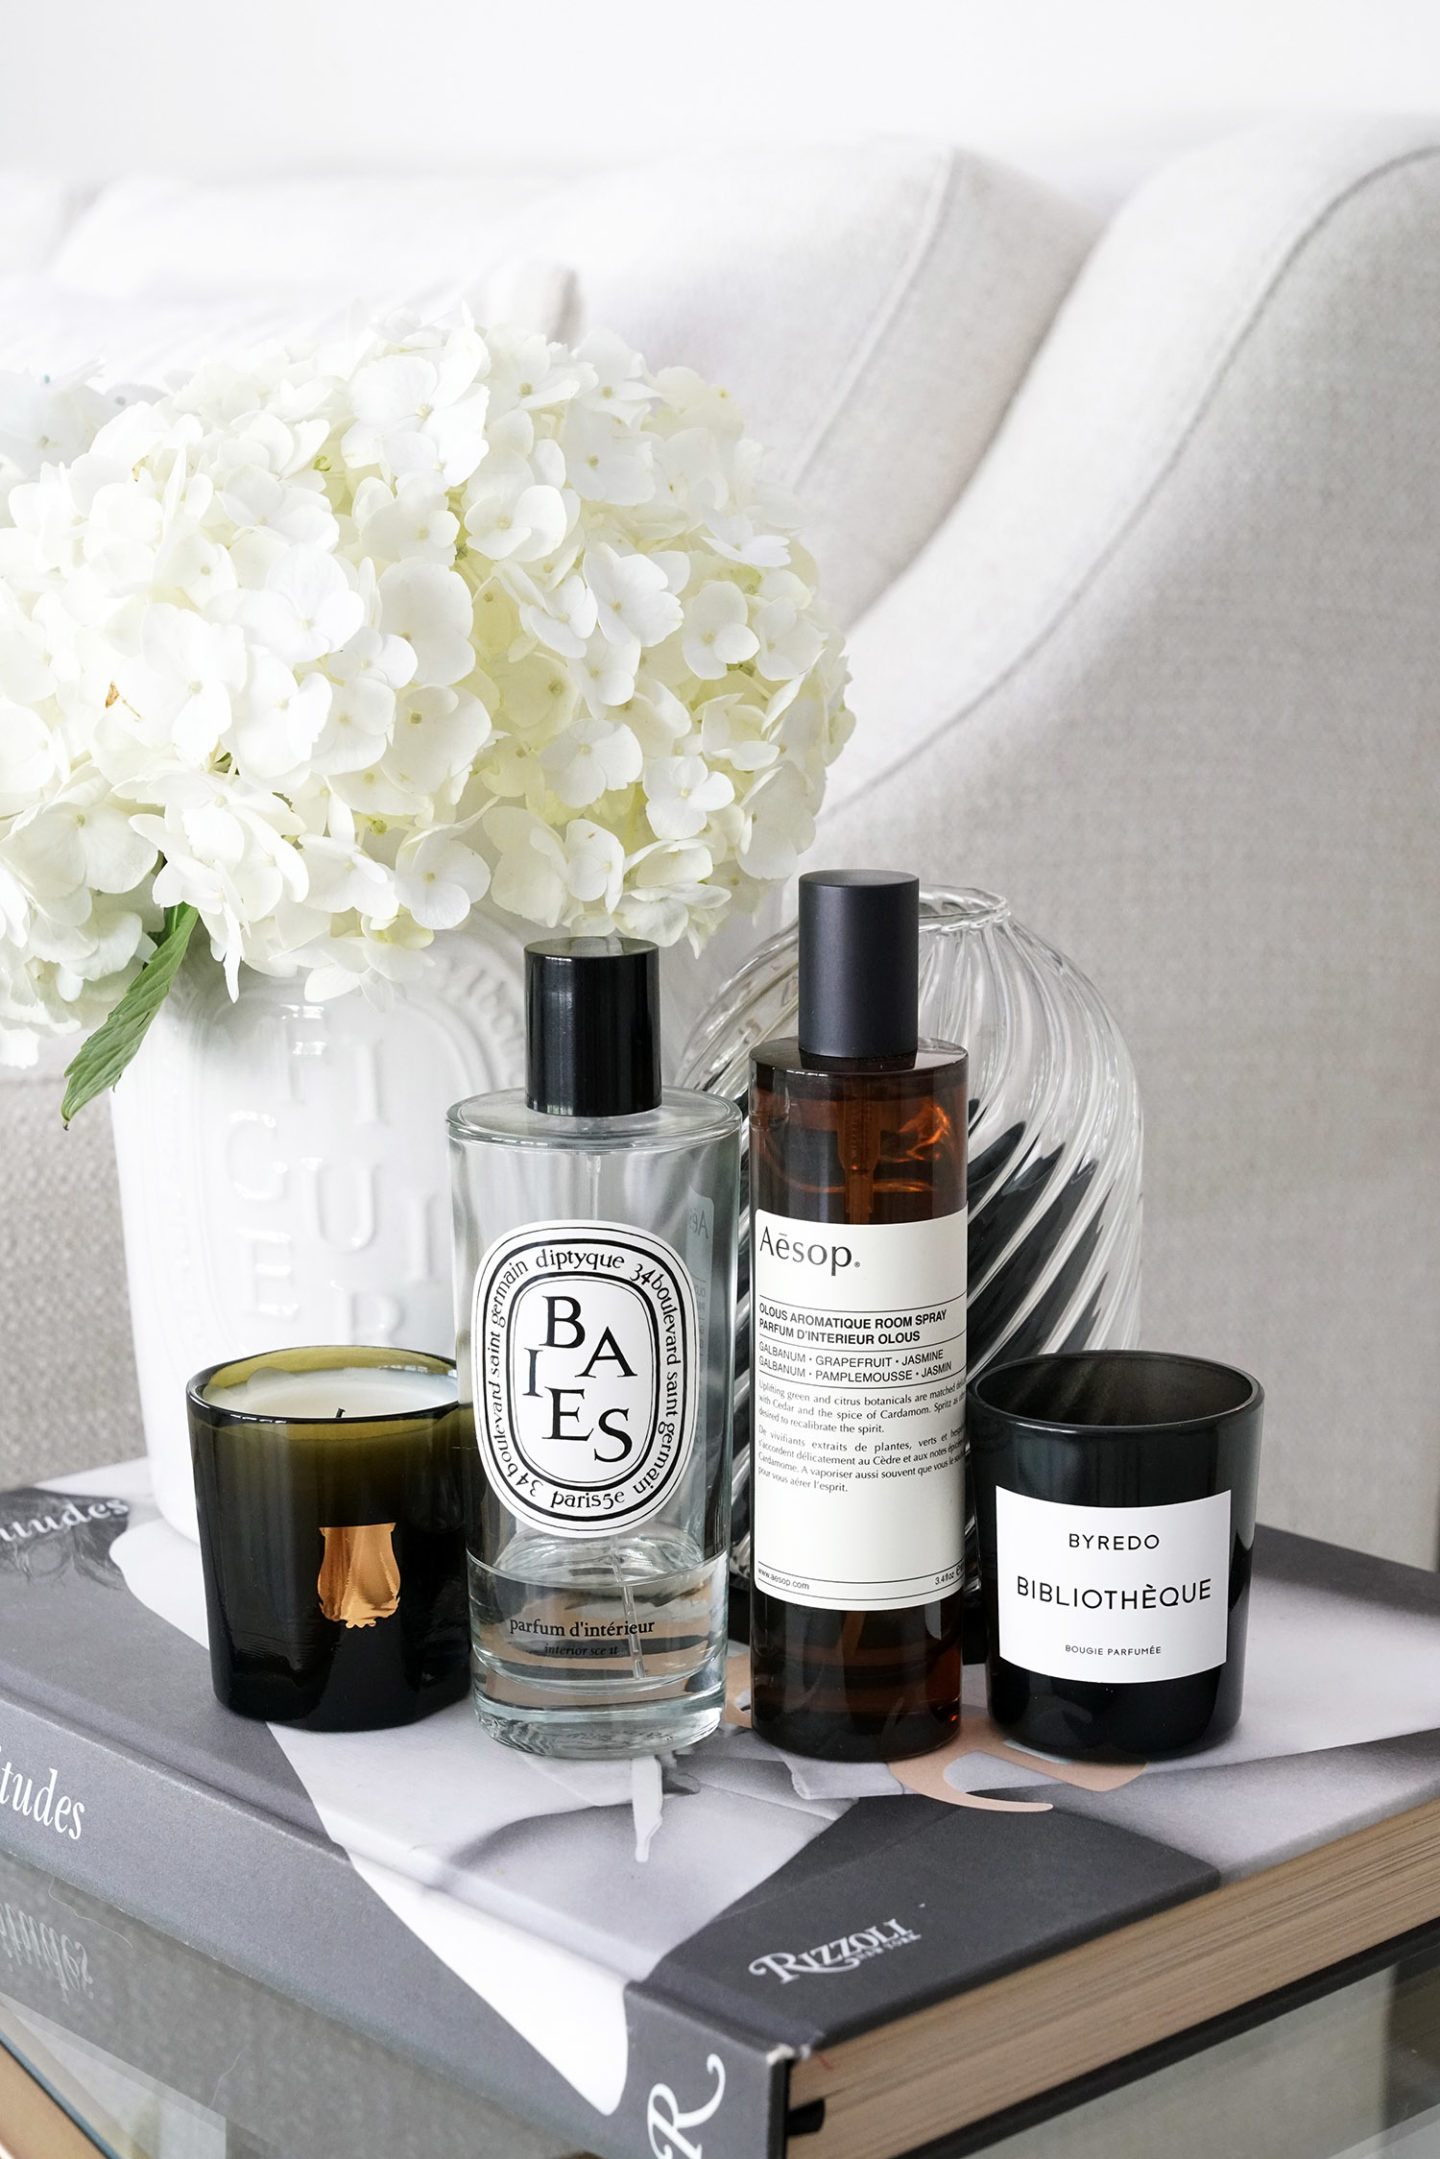 Best Home Scents Cire Trudon, Diptyque, Aesop